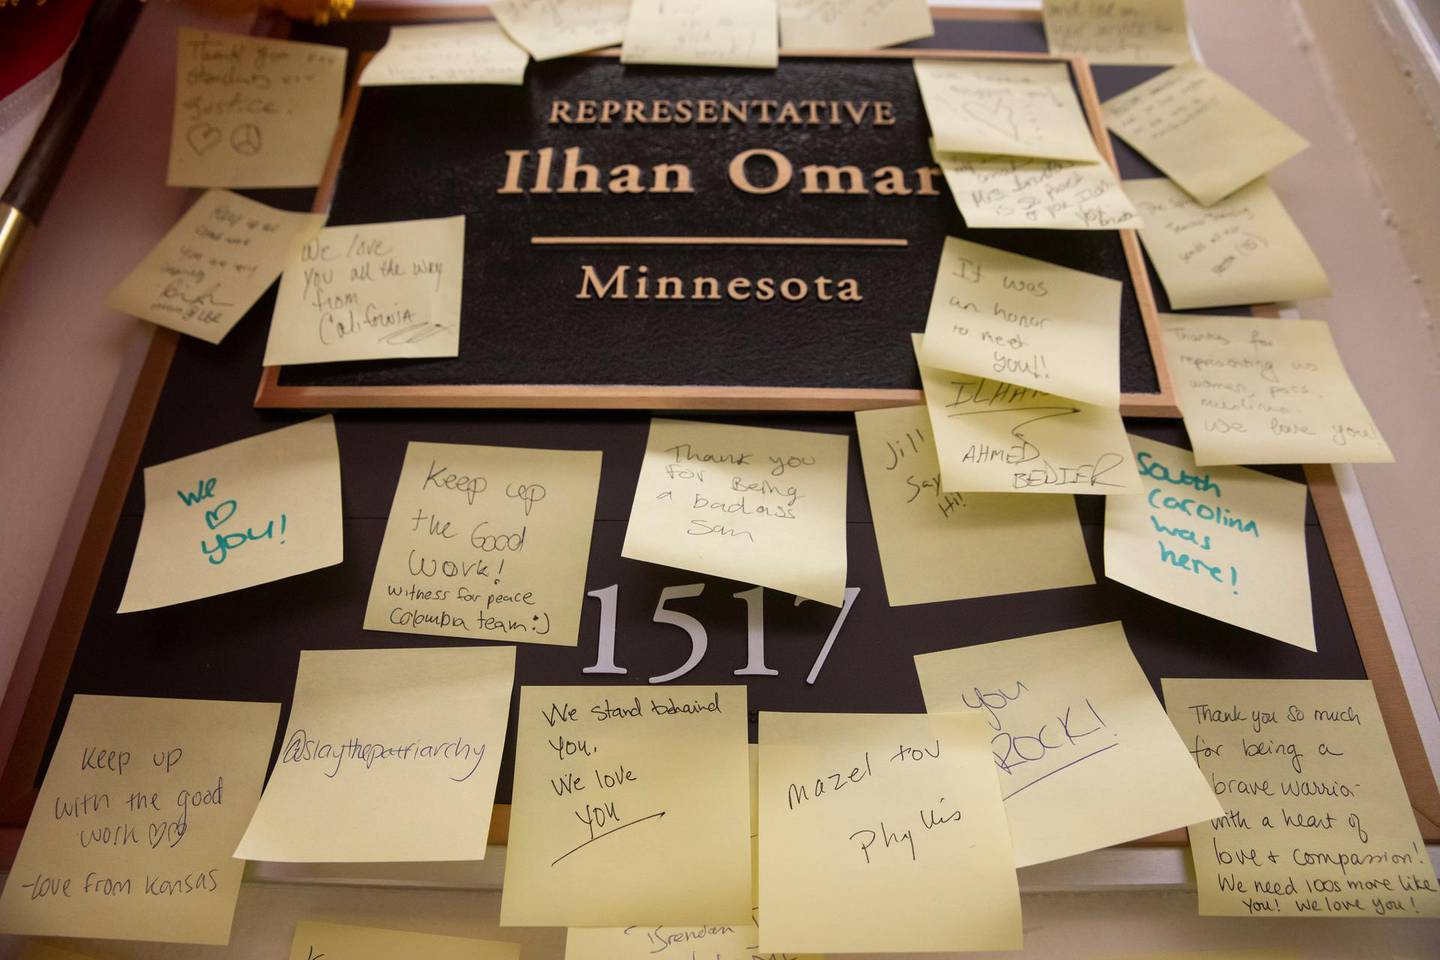 epa07364455 Post-it Notes of support for Democratic Representative of Minnesota Ilhan Omar hang on her office nameplate at her Longworth House Office Building in Washington, DC, USA, 12 February 2019. Omar apologized for statements condemned as anti-semitic by both Democratic and Republican colleagues.  EPA/ERIK S. LESSER